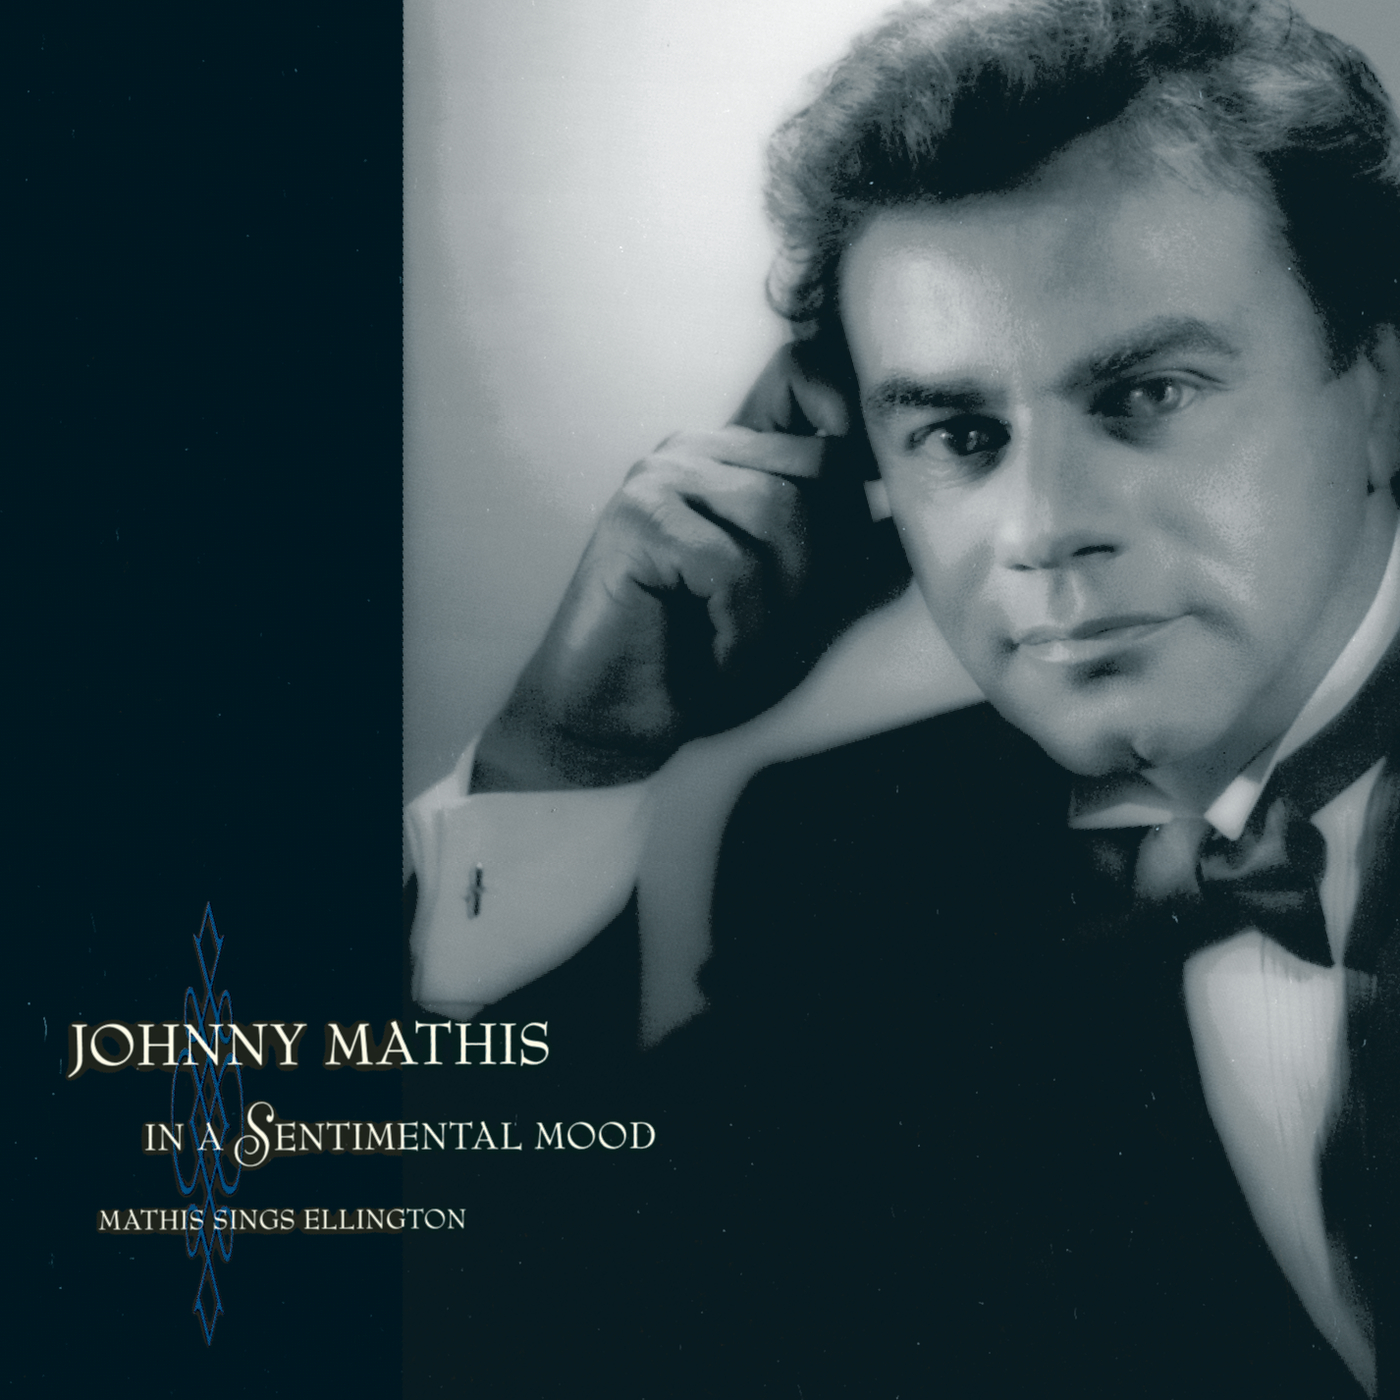 In A Sentimental Mood Mathis Sings Ellington - Johnny Mathis